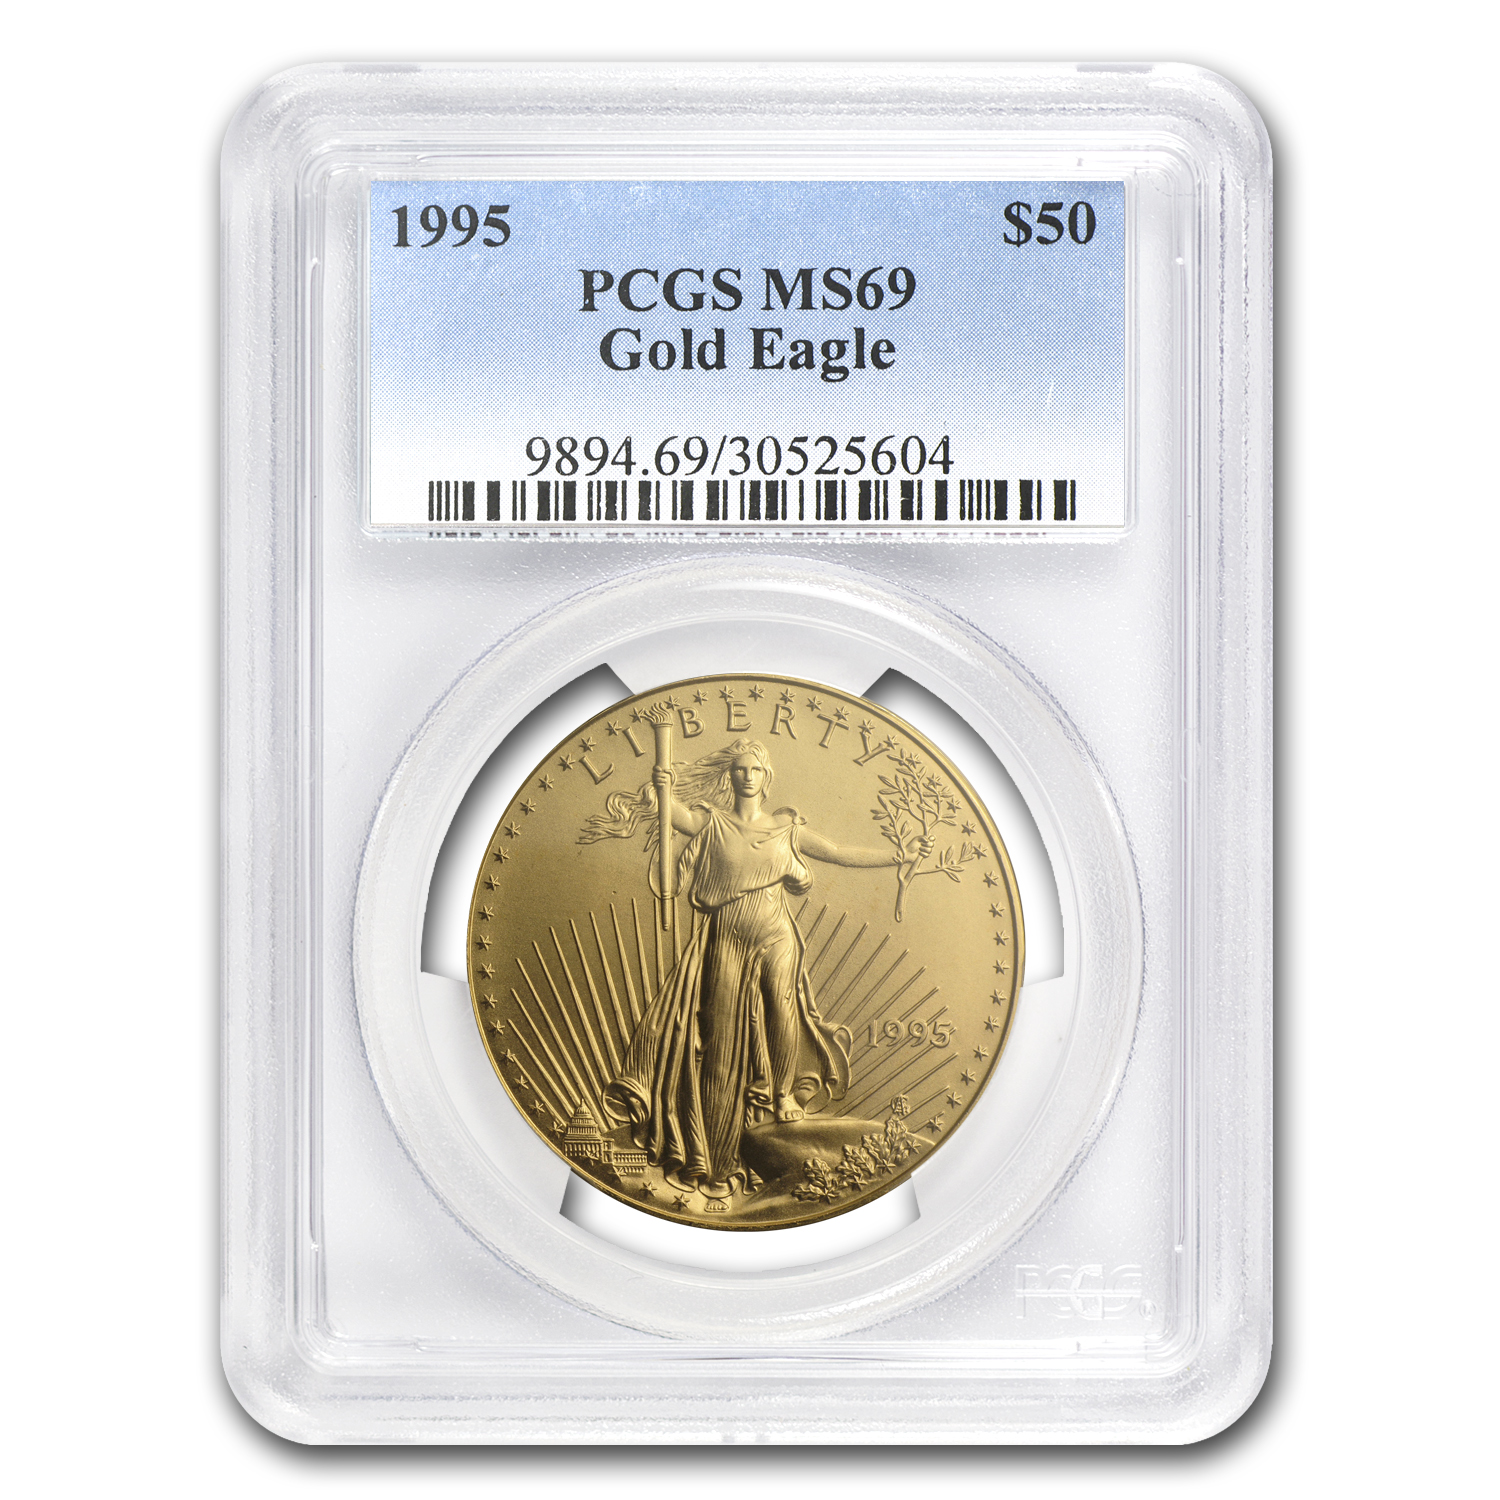 1995 1 oz Gold American Eagle MS-69 PCGS